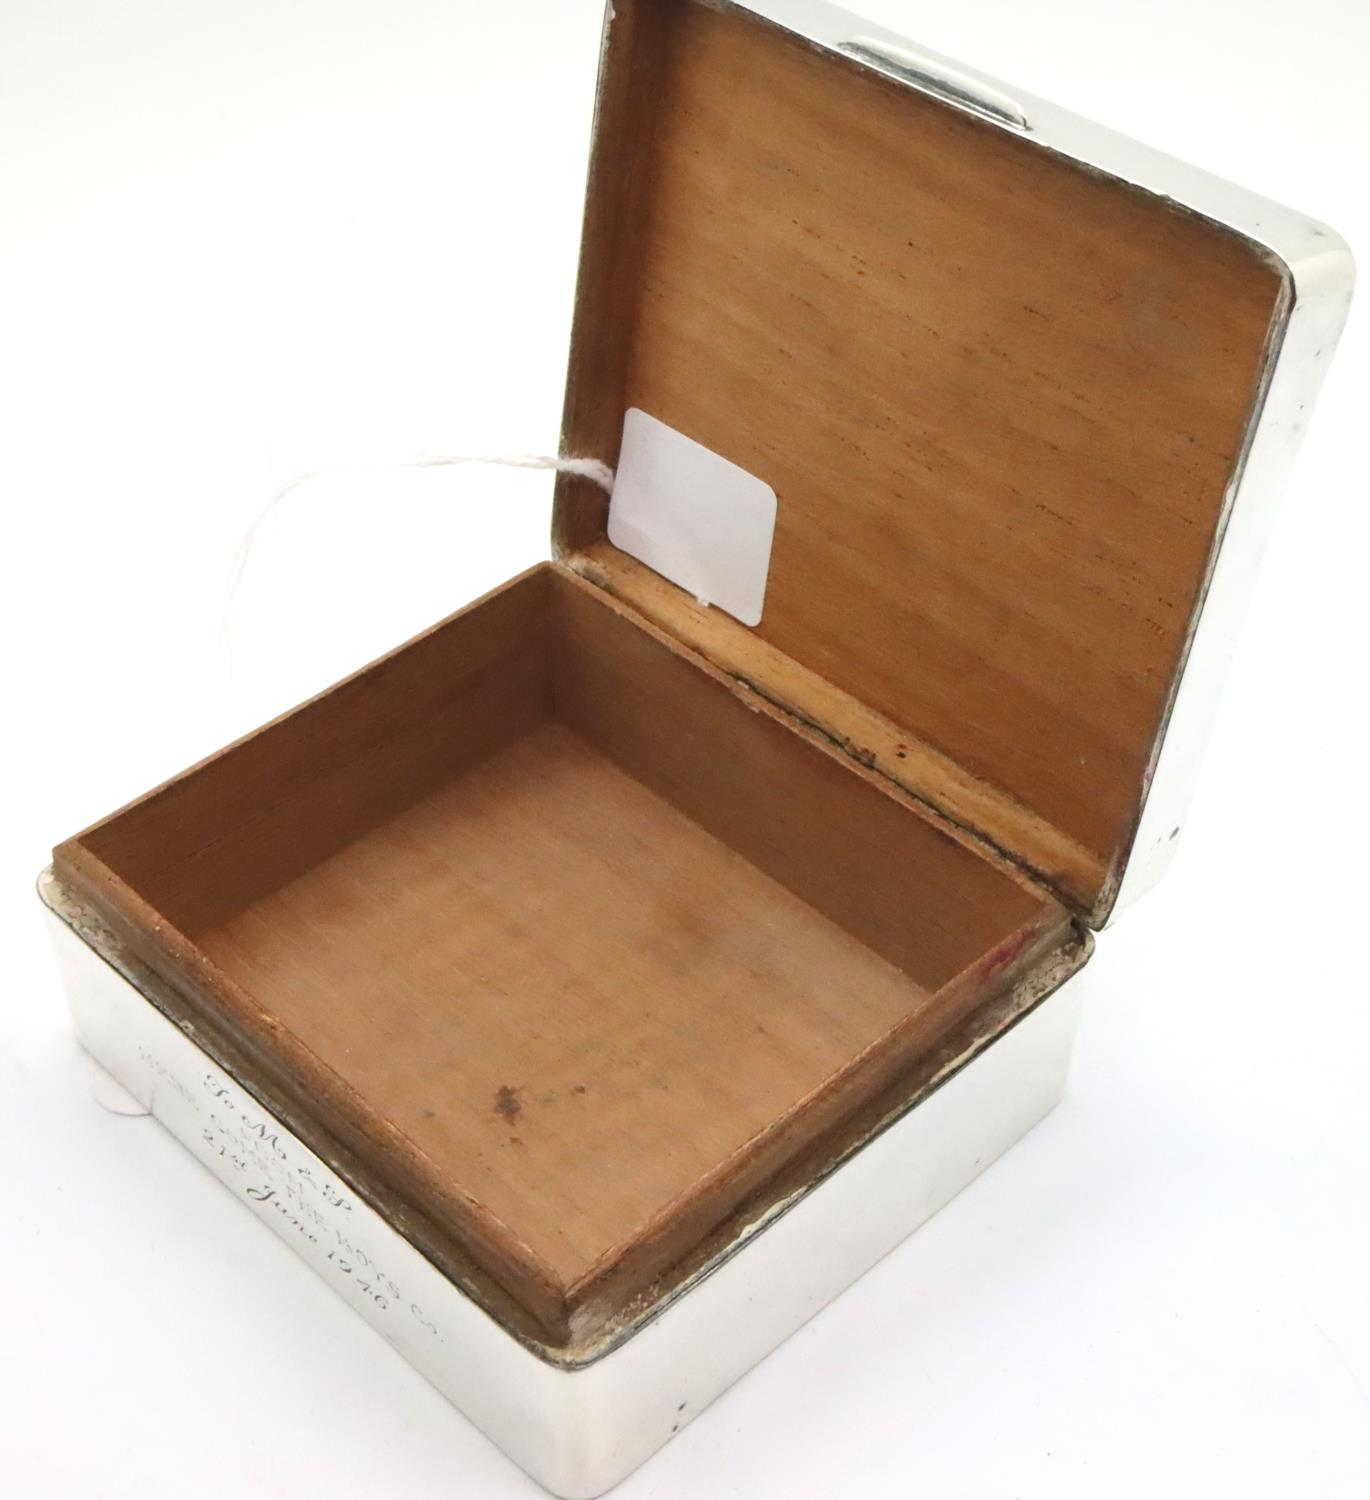 Hallmarked silver cigarette box, cedar lined and dated 1946 by inscription. P&P Group 1 (£14+VAT for - Image 2 of 4